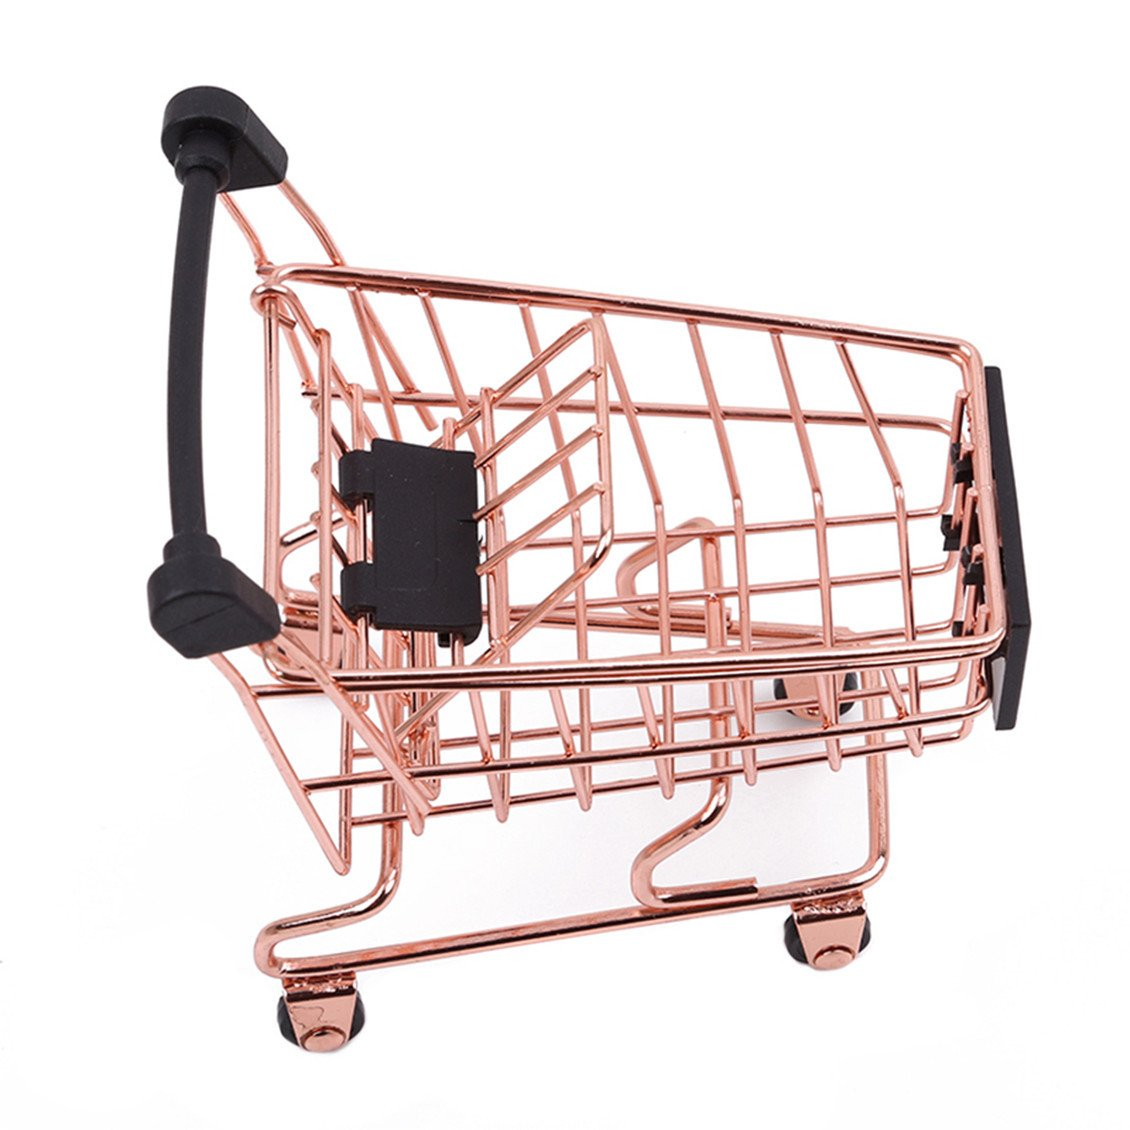 Dolland Mini Shopping Cart Supermarket Handcart Shopping Utility Cart Storage Toy Basket Desk Pen Holder,S-Rose Gold by Dolland (Image #2)